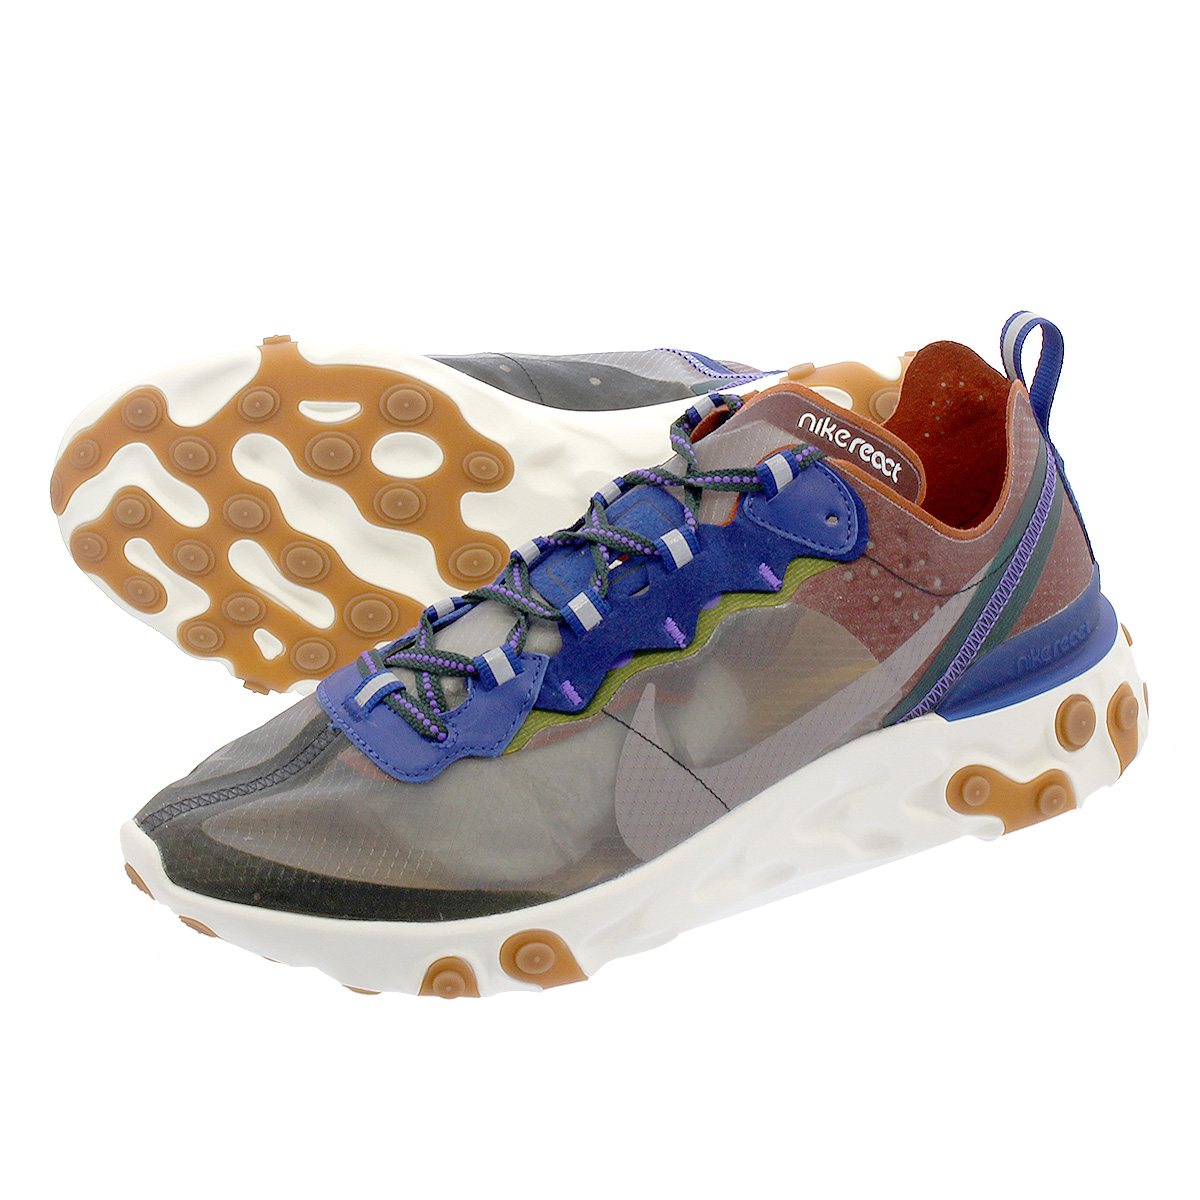 f5aac4a0 NIKE REACT ELEMENT 87 Ney drill act element 87 DUSTY PEACH/ATMOSPHERE GREY  aq1090-200